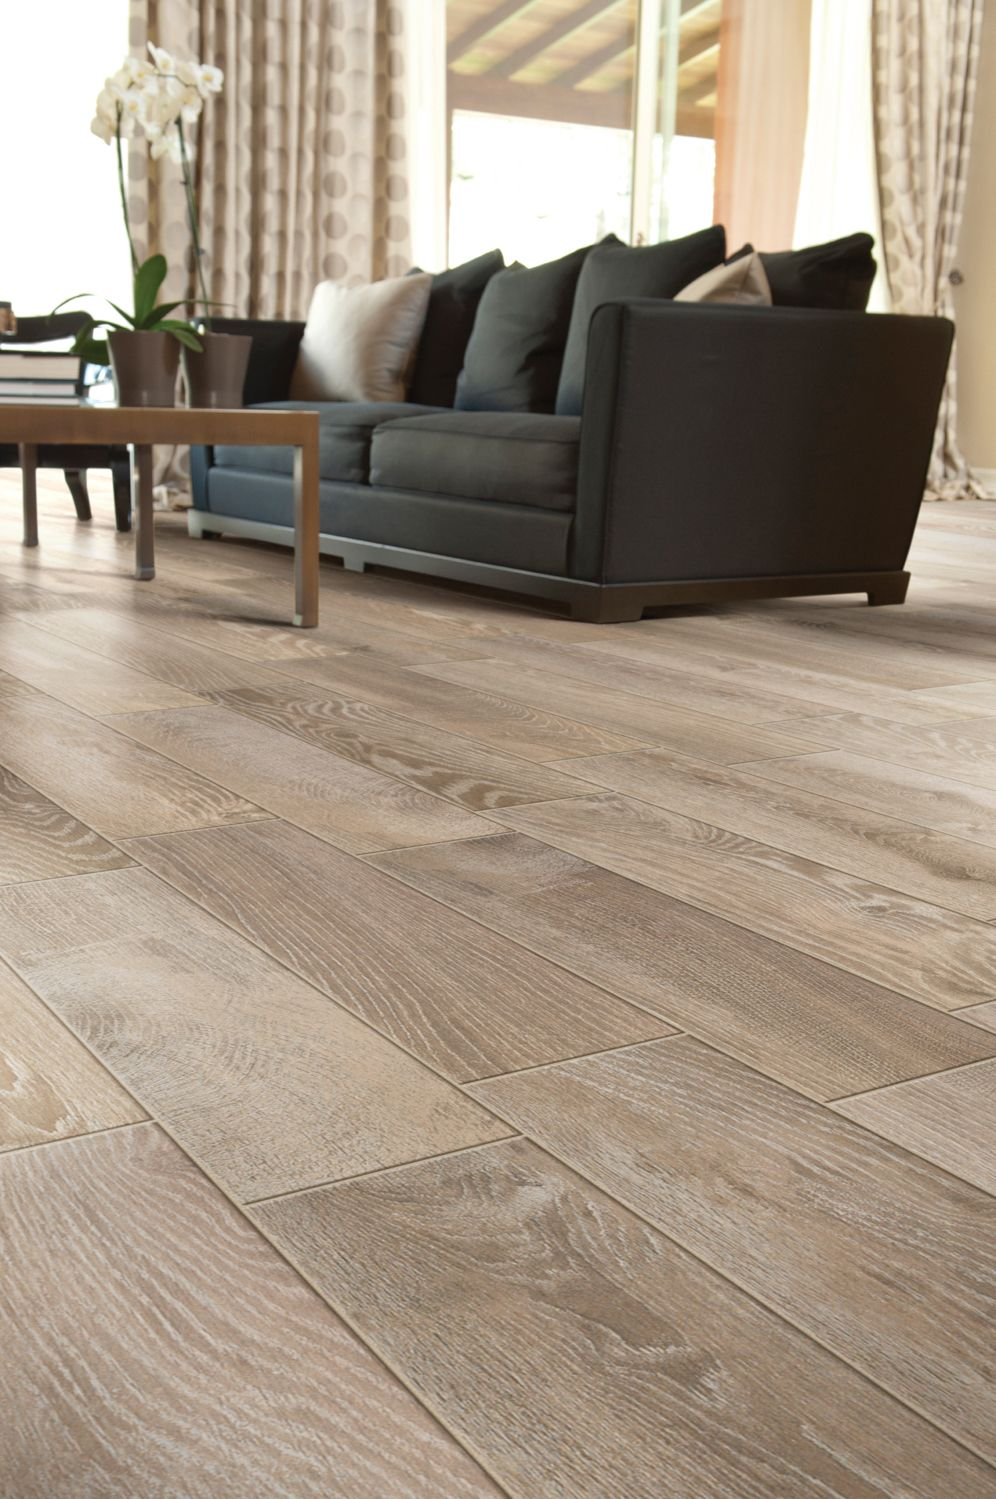 Love This Tile Plank Flooring Perfect Color For Weathered Oak Look Porcelain That Looks Like Hardwood Porcelainplanks Tileplanks